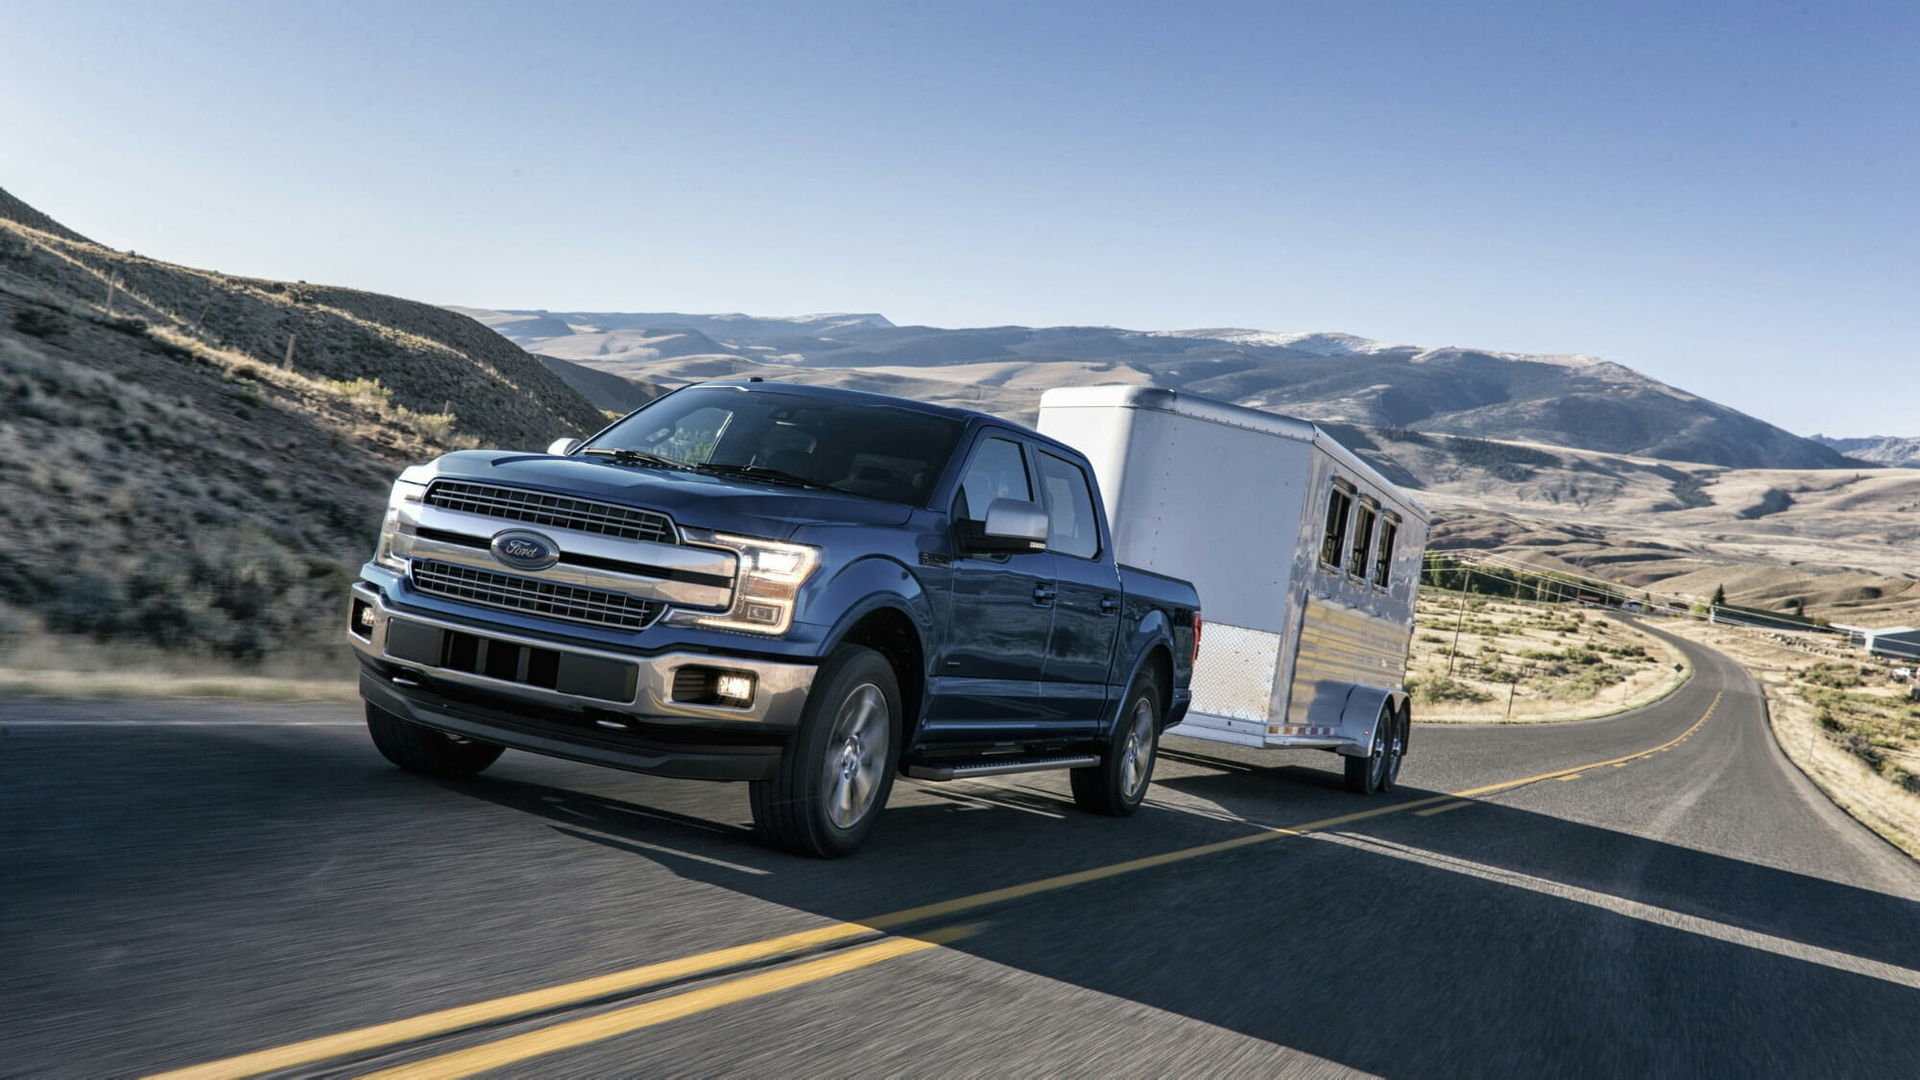 What Size Travel Trailer Can A F150 Pull? - RV Talk